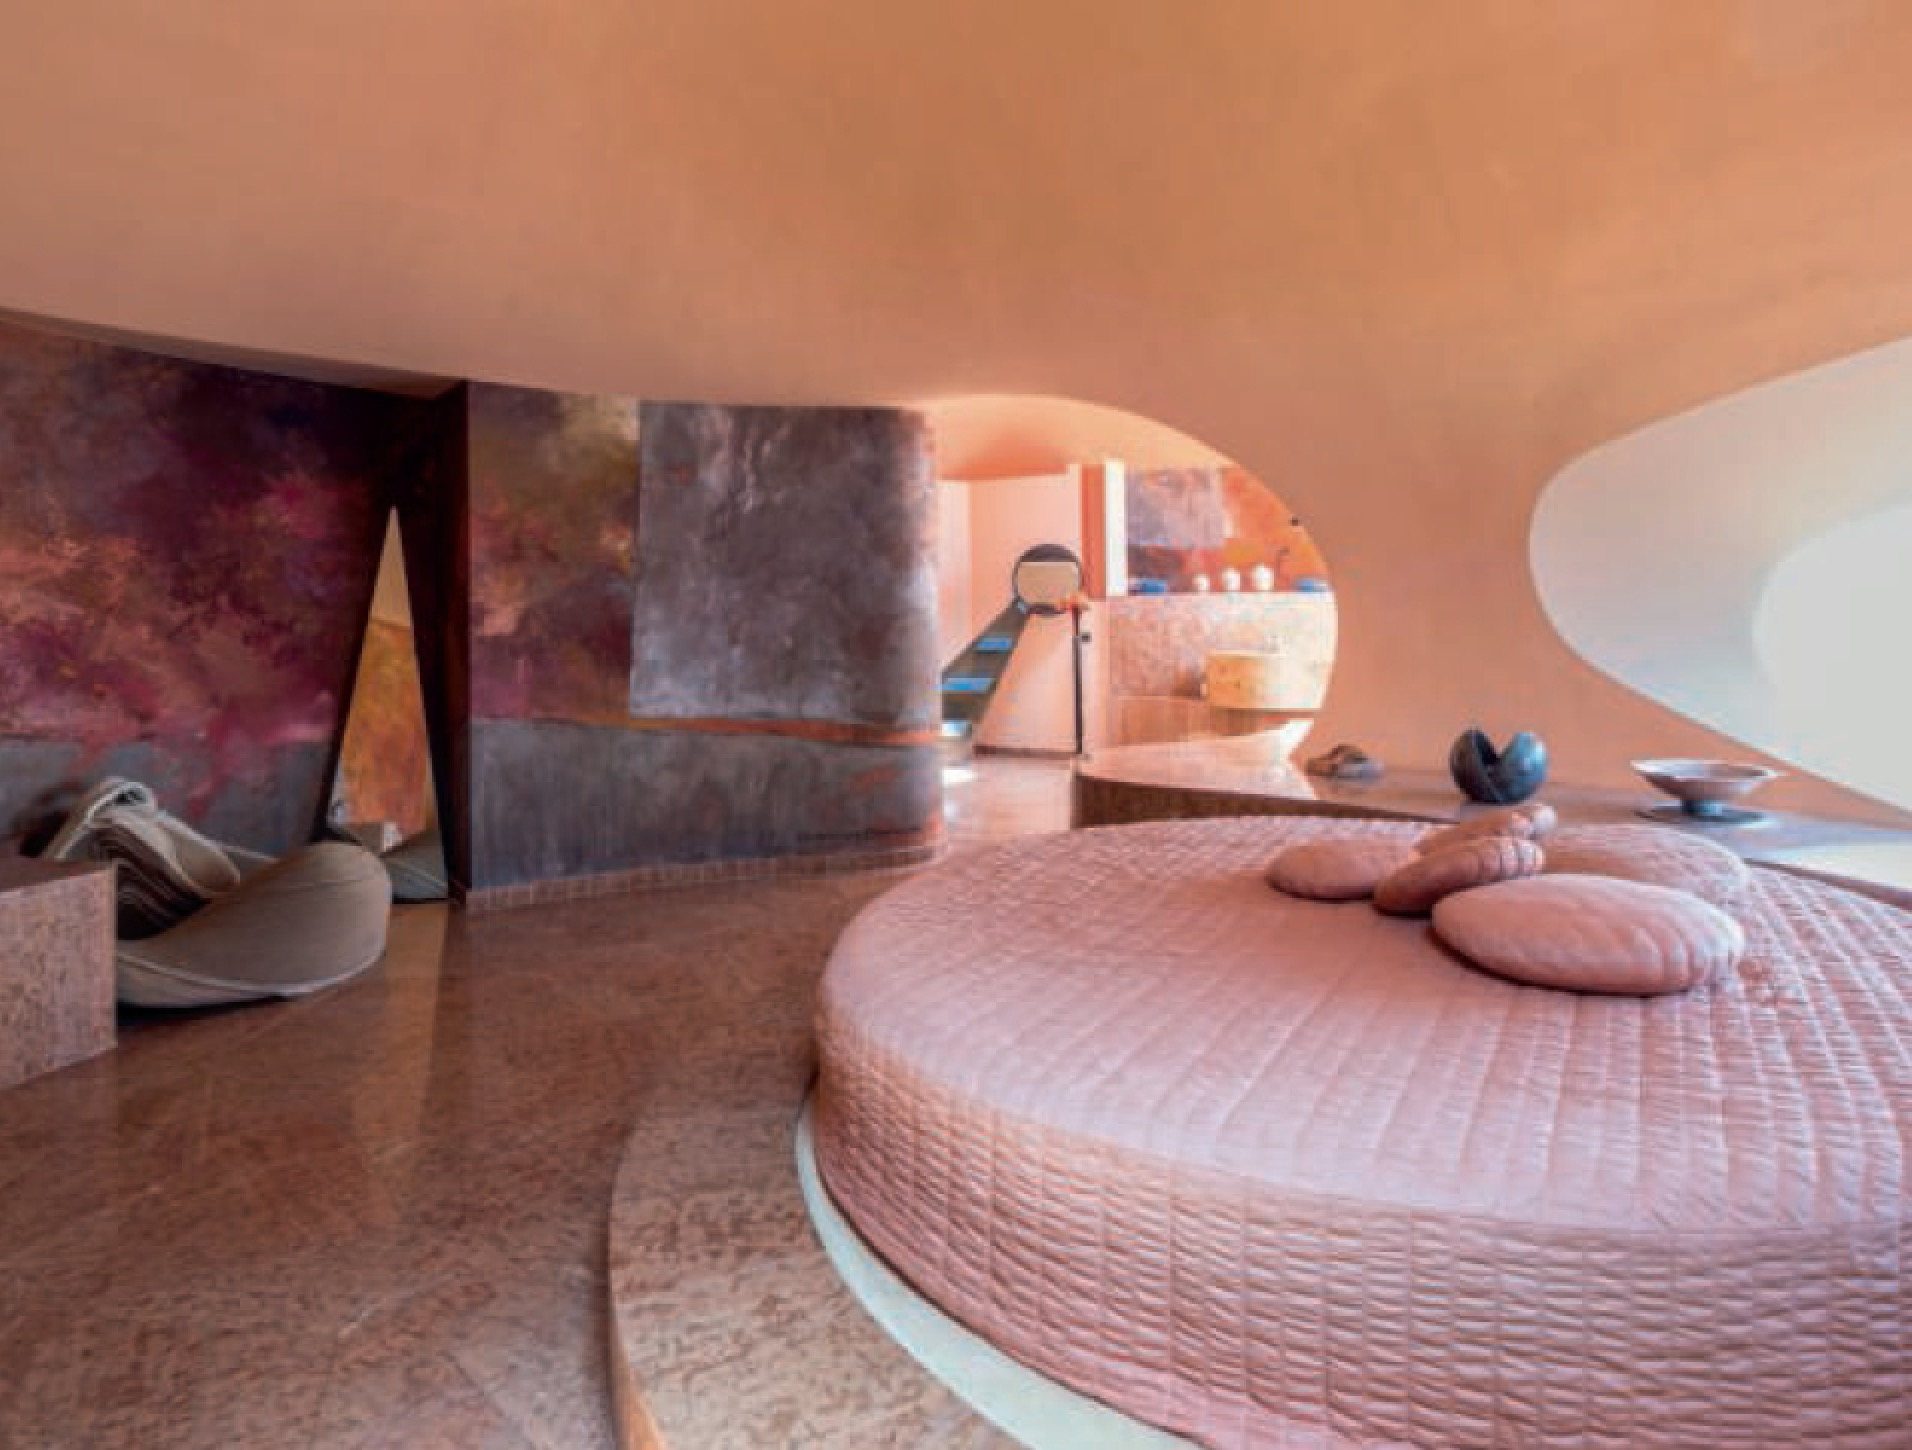 Palais Bulles Designers Antti Lovag & Pierre Cardin Bedroom, Cote d'Azur, France Completed 1992 - as featured in Interiors: The Greatest Rooms of the Century